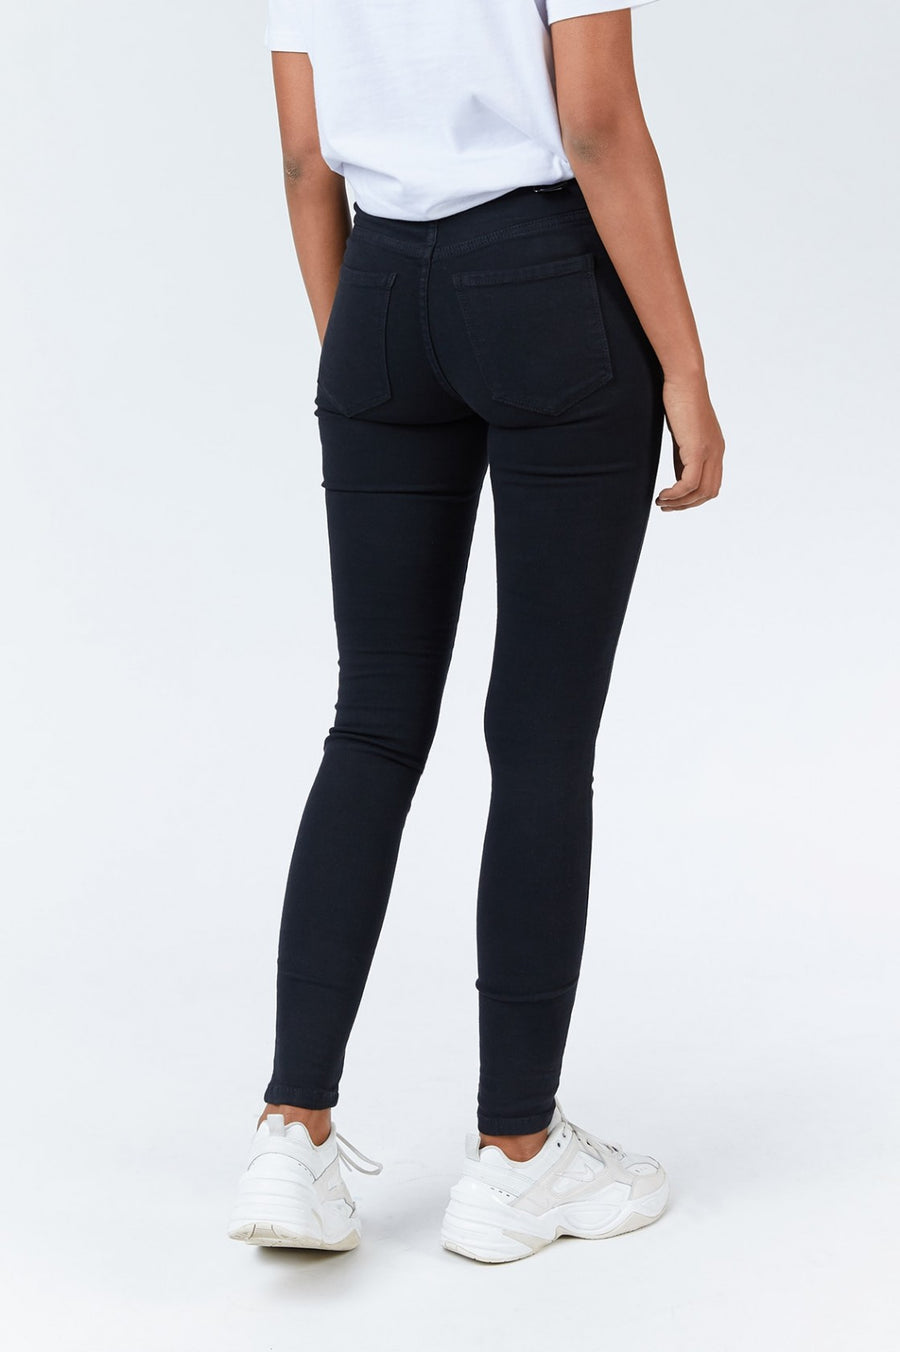 Dr Denim Lexy skinny black jeans